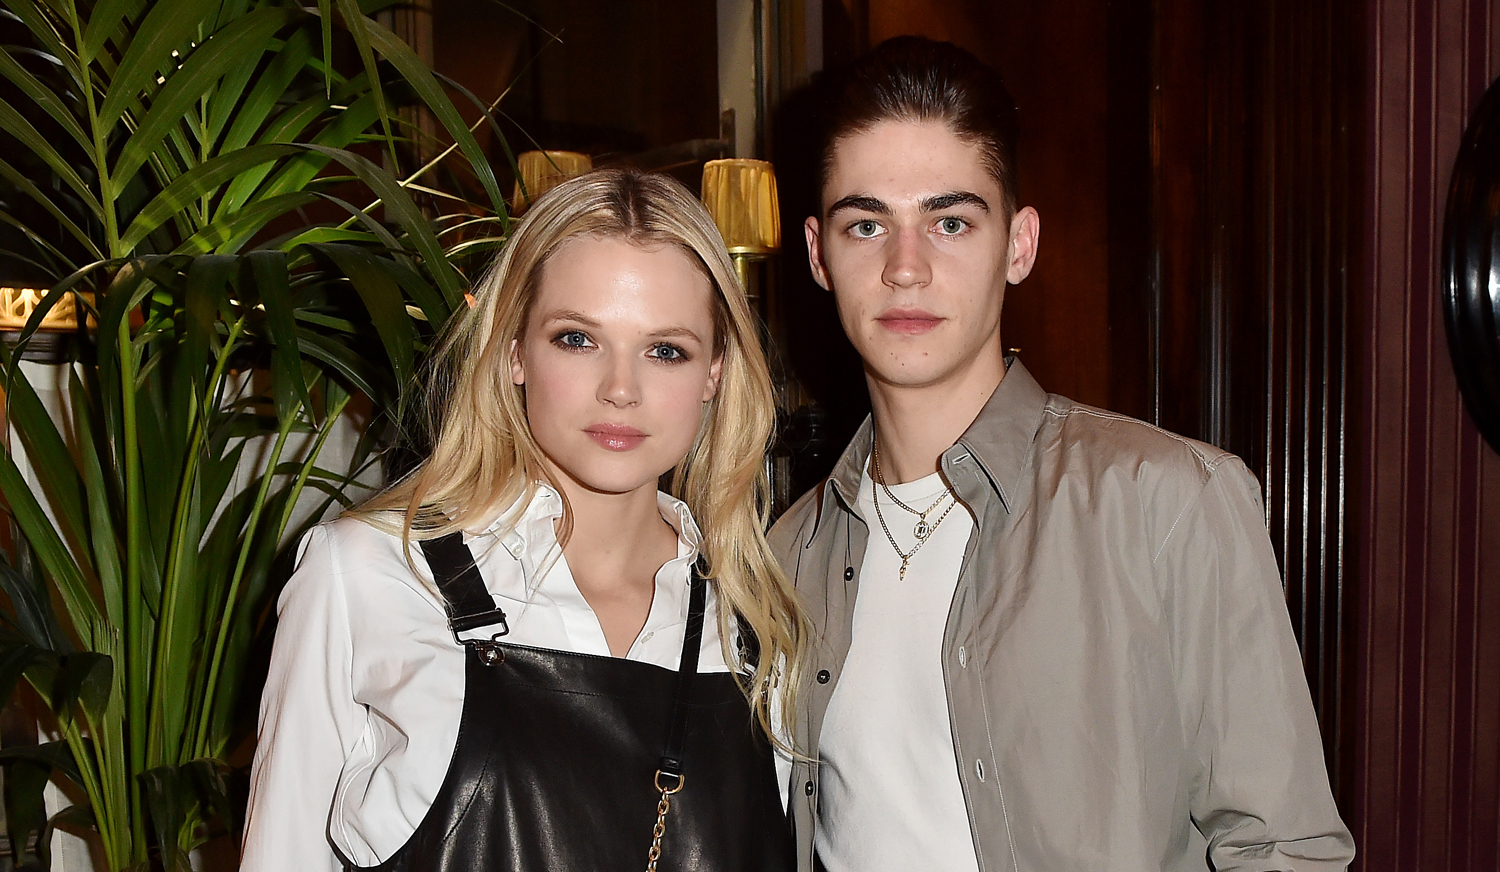 After S Hero Fiennes Tiffin Meets Up With Gabriella Wilde At Ferragamo Dinner Charlie Heaton Fashion Gabriella Wilde Hero Fiennes Tiffin Jeremy Irvine Joe Keery Maika Monroe Michelle Monaghan Natalia Dyer